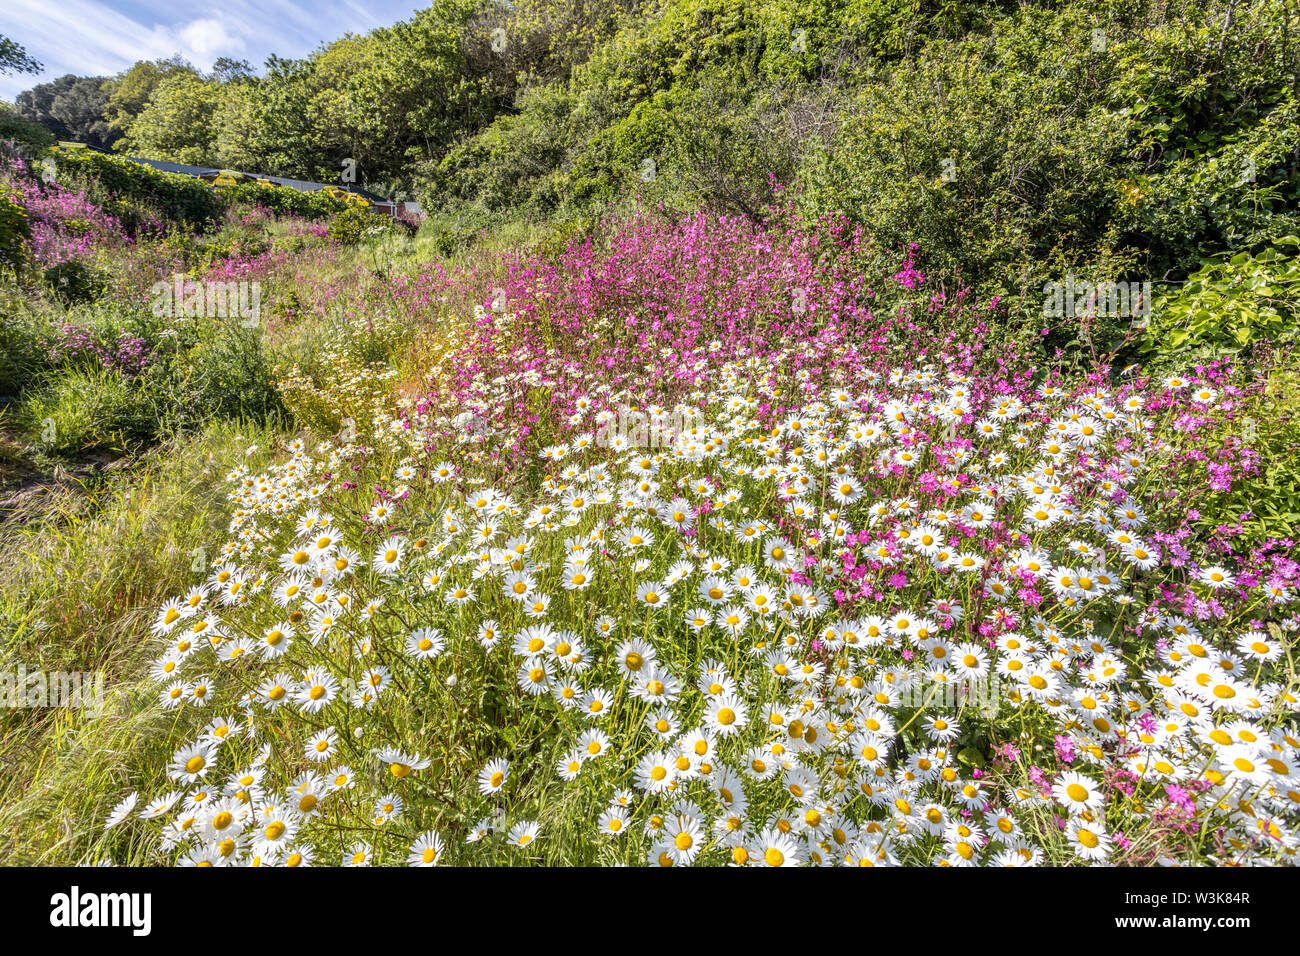 The beautiful rugged south coast of Guernsey - Wild flowers beside the coastal footpath round Moulin Huet Bay, Guernsey, Channel Islands UK Stock Photo